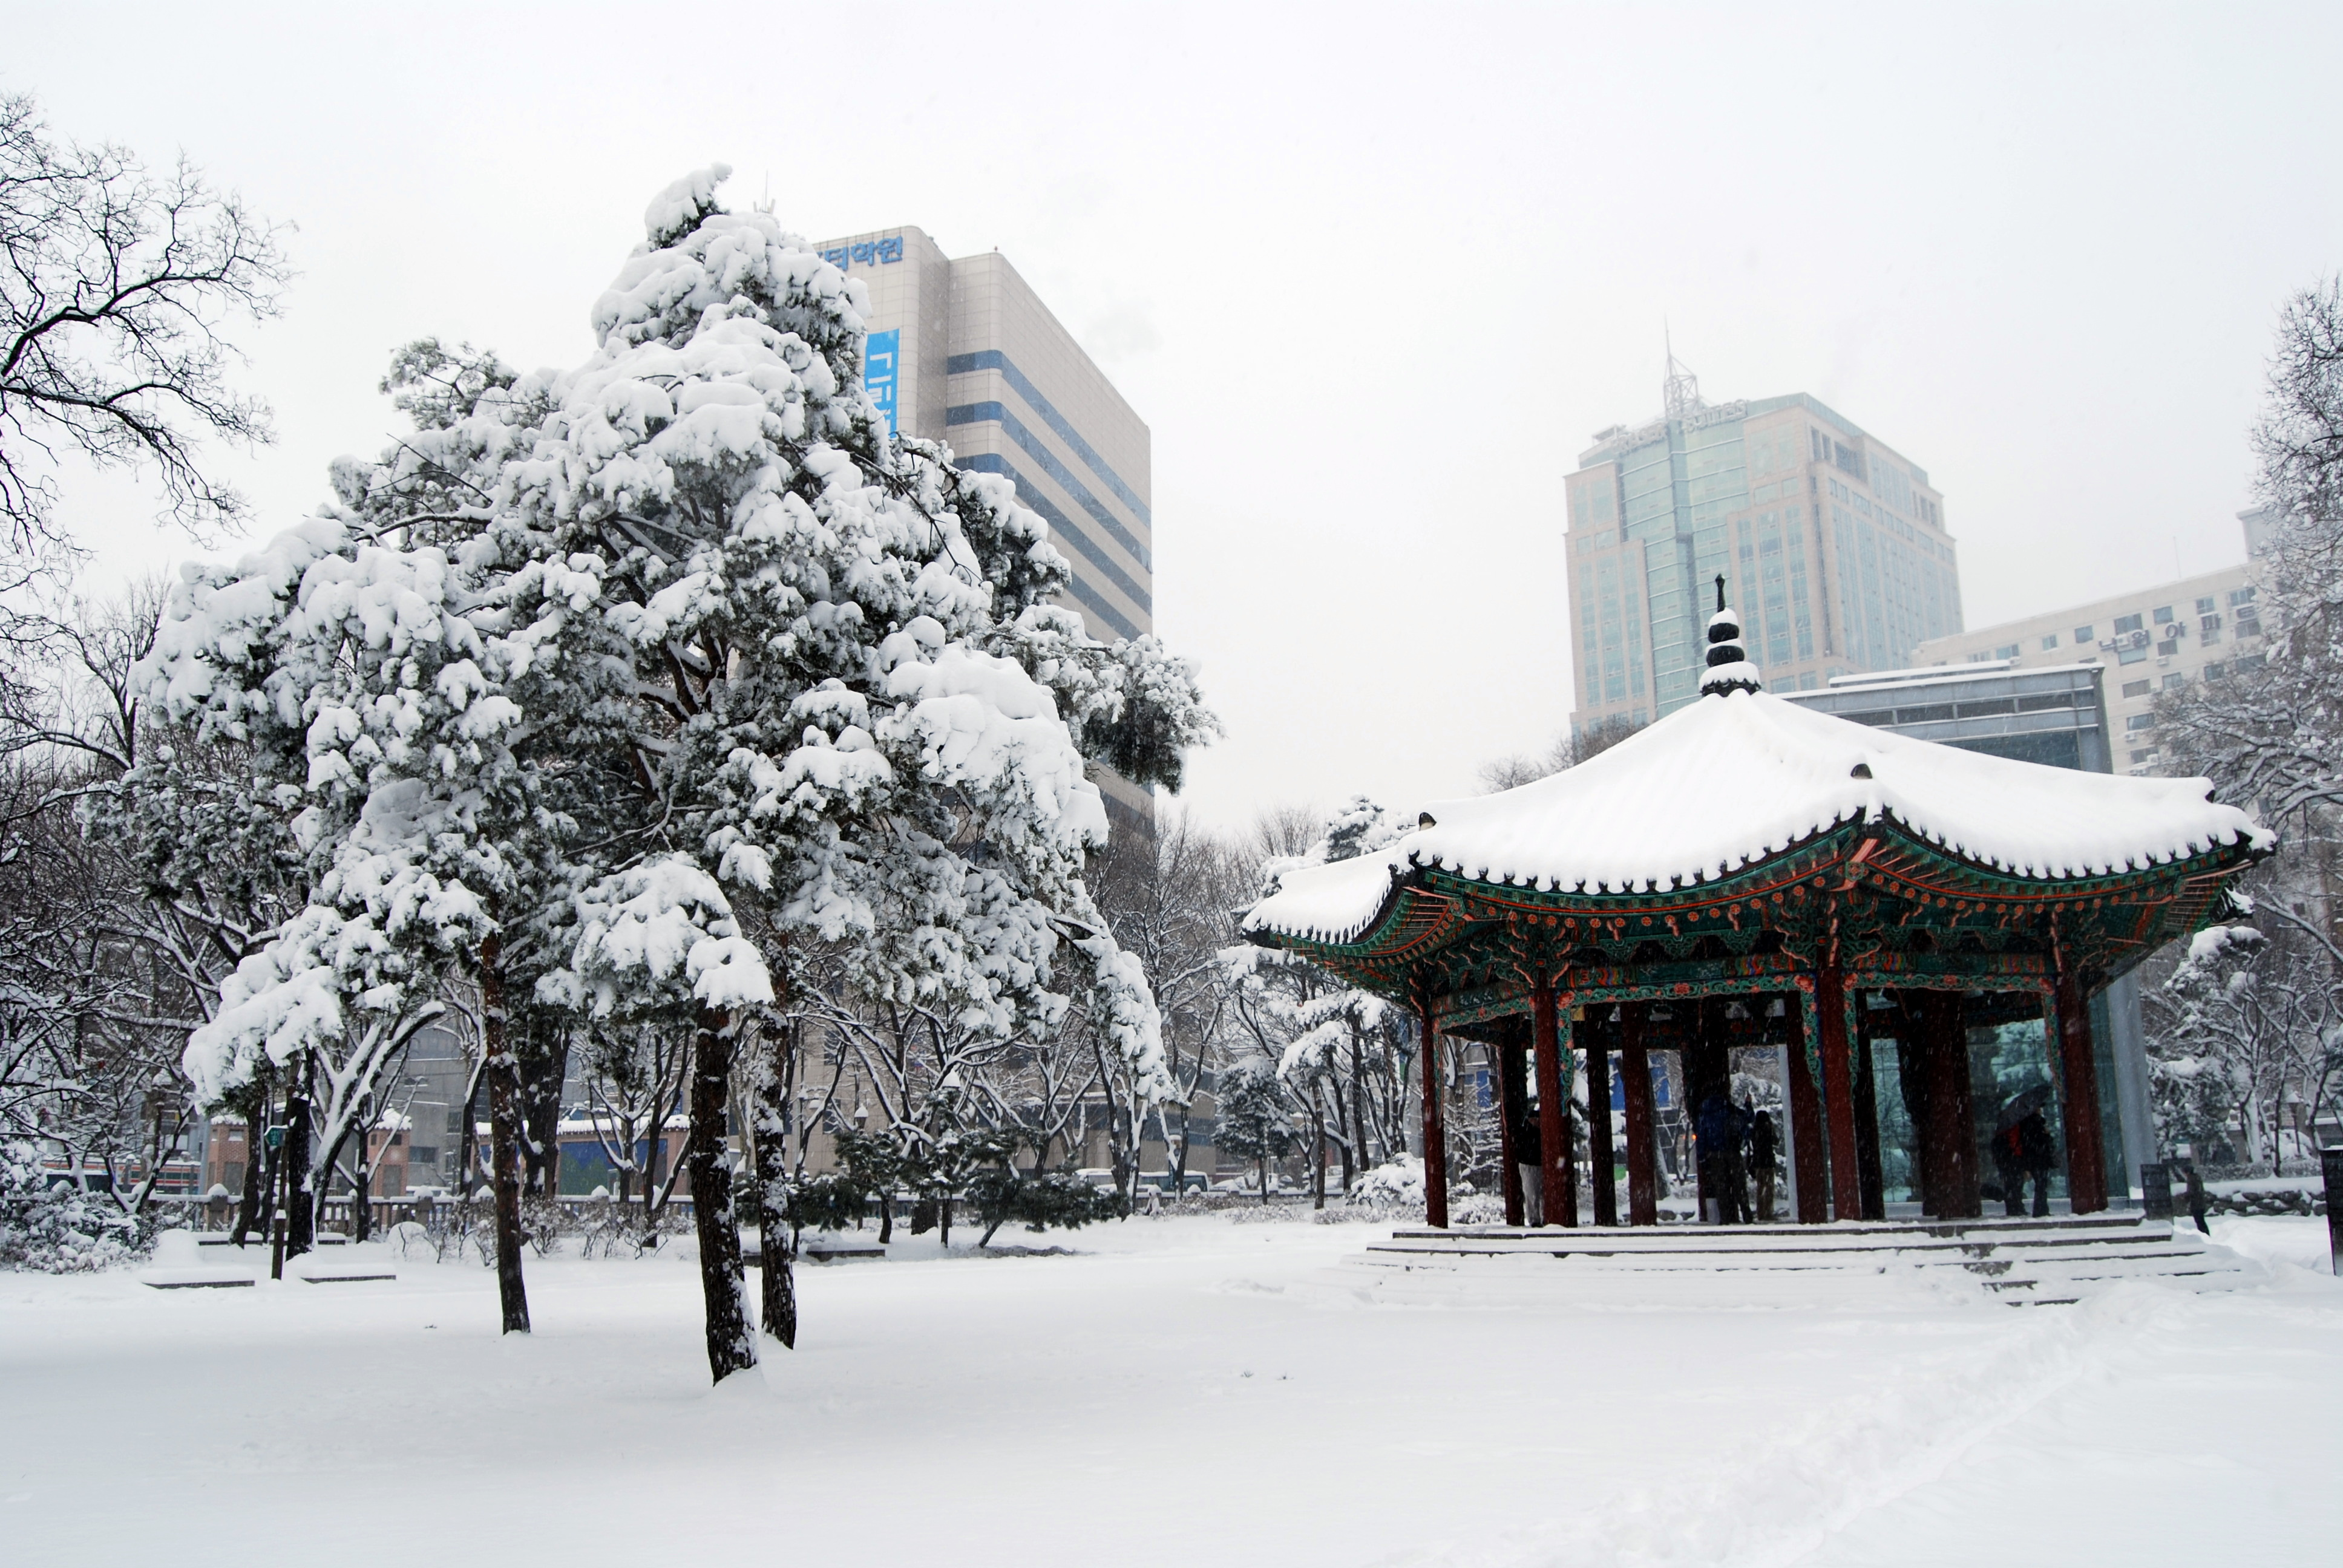 FileHeavy snow in Seoul 4 Jan 2010  Covered the park